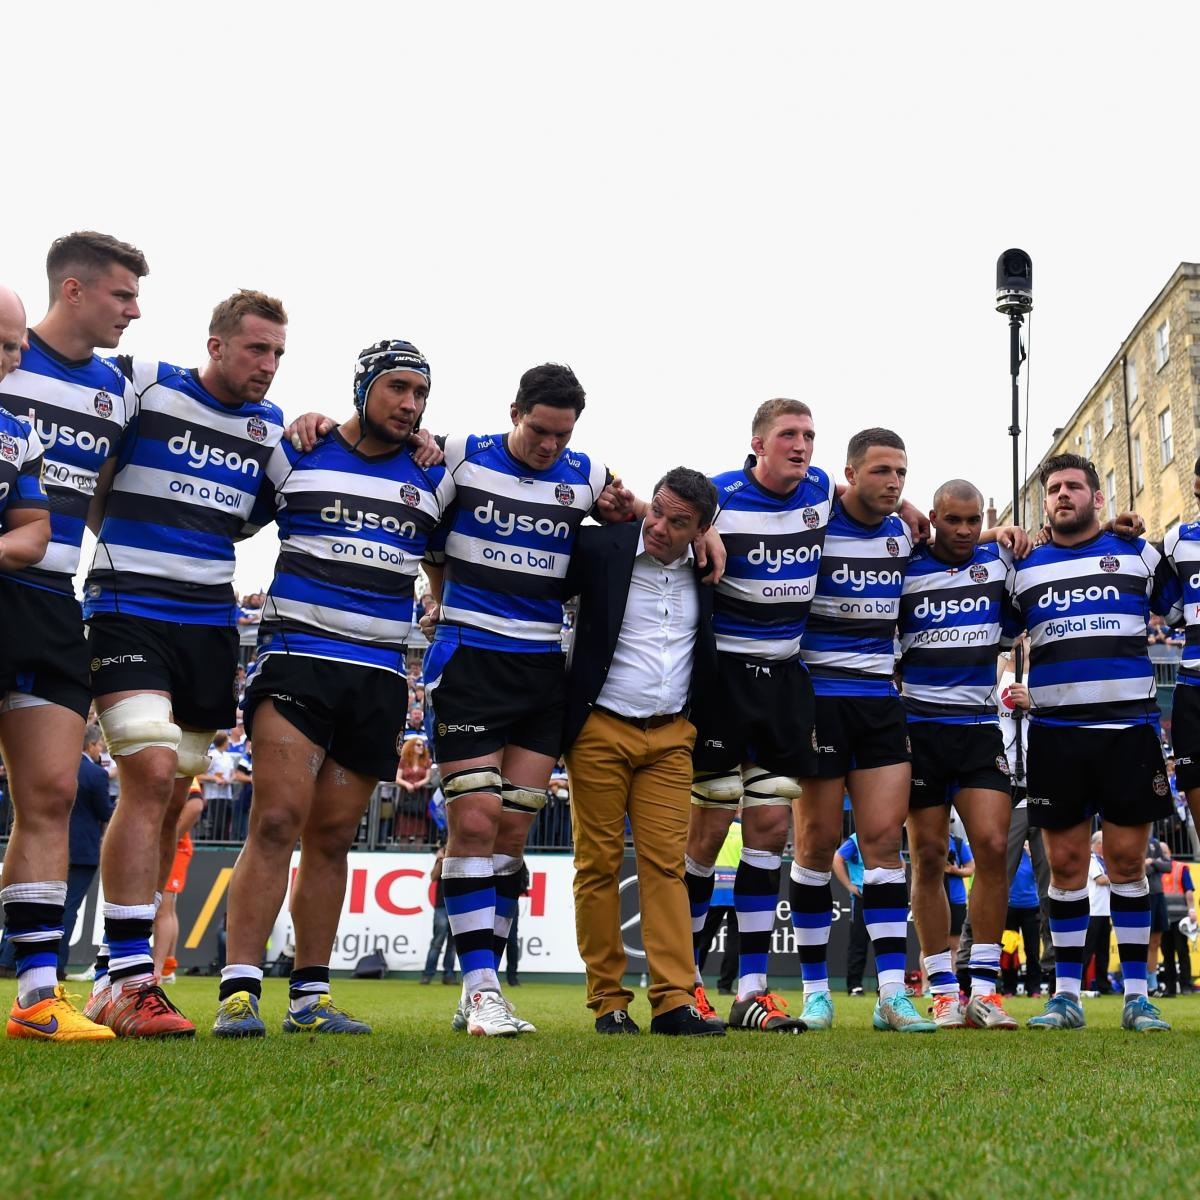 Rugby Premiership Final 2015: Time And Live Stream For